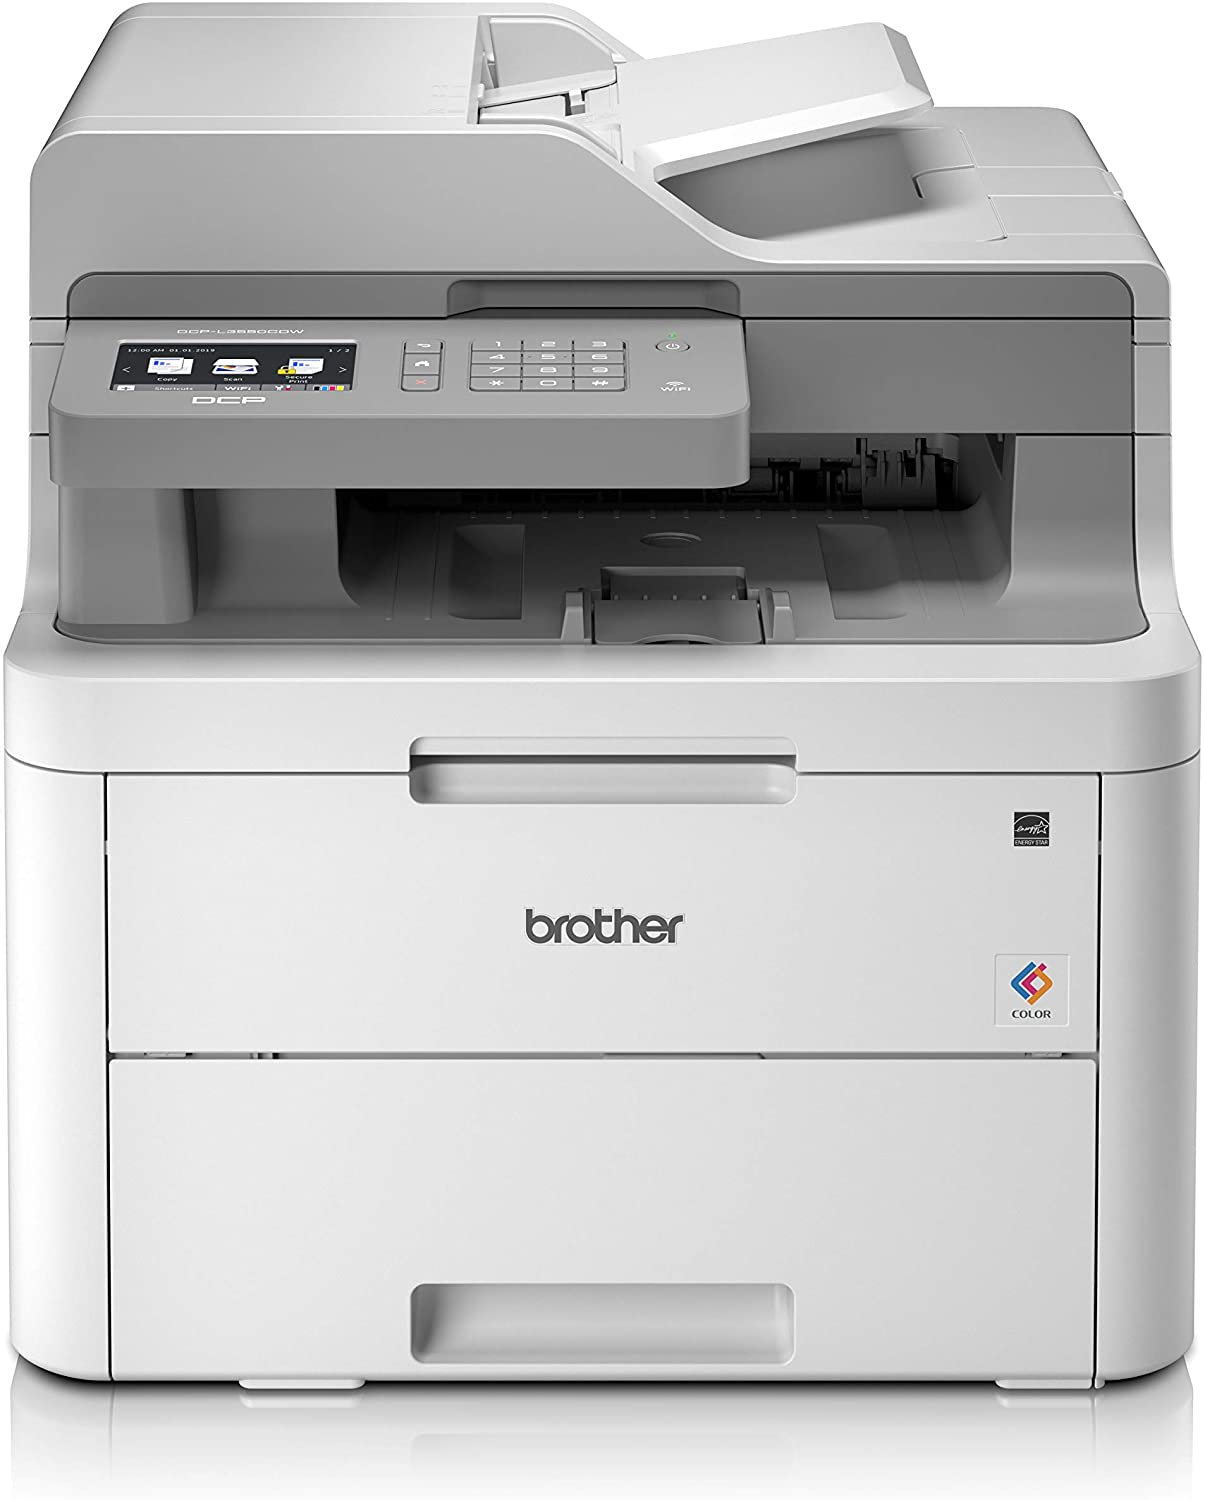 Brother DCP-L3550DW